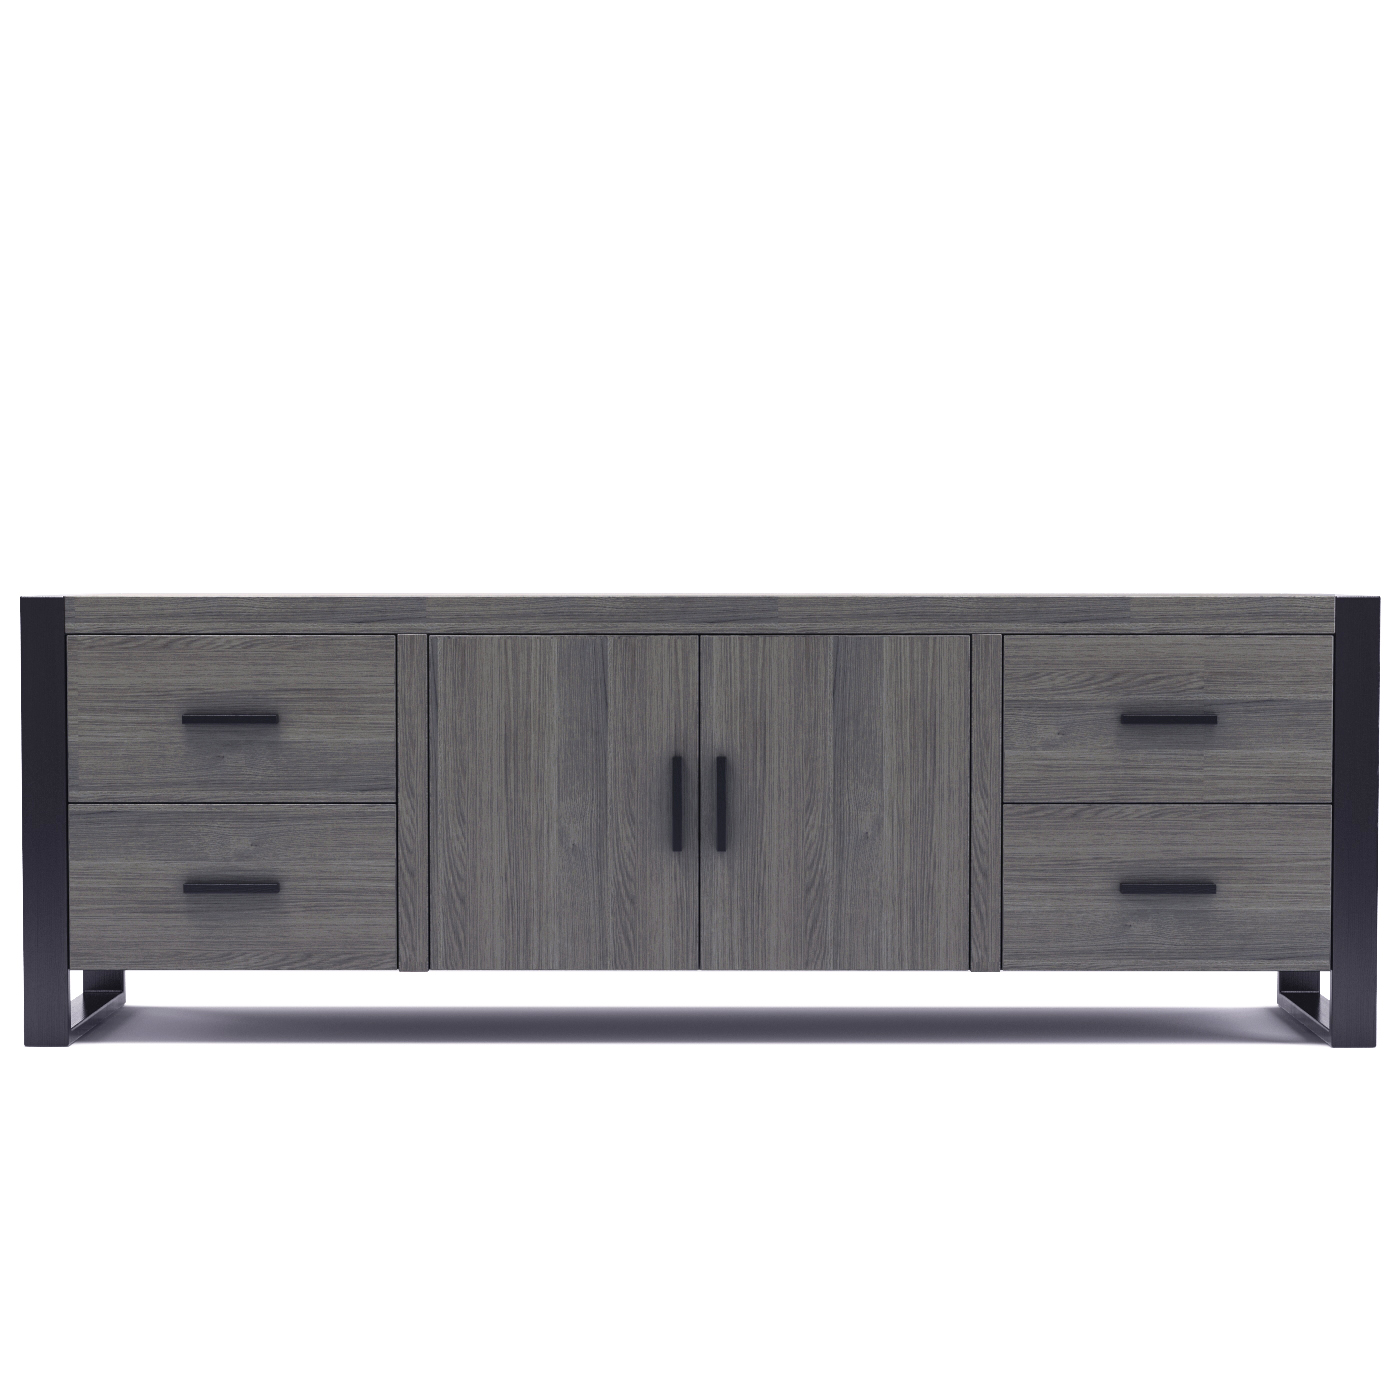 Dexter 70 Inch TV Stand in Ash Grey and Black